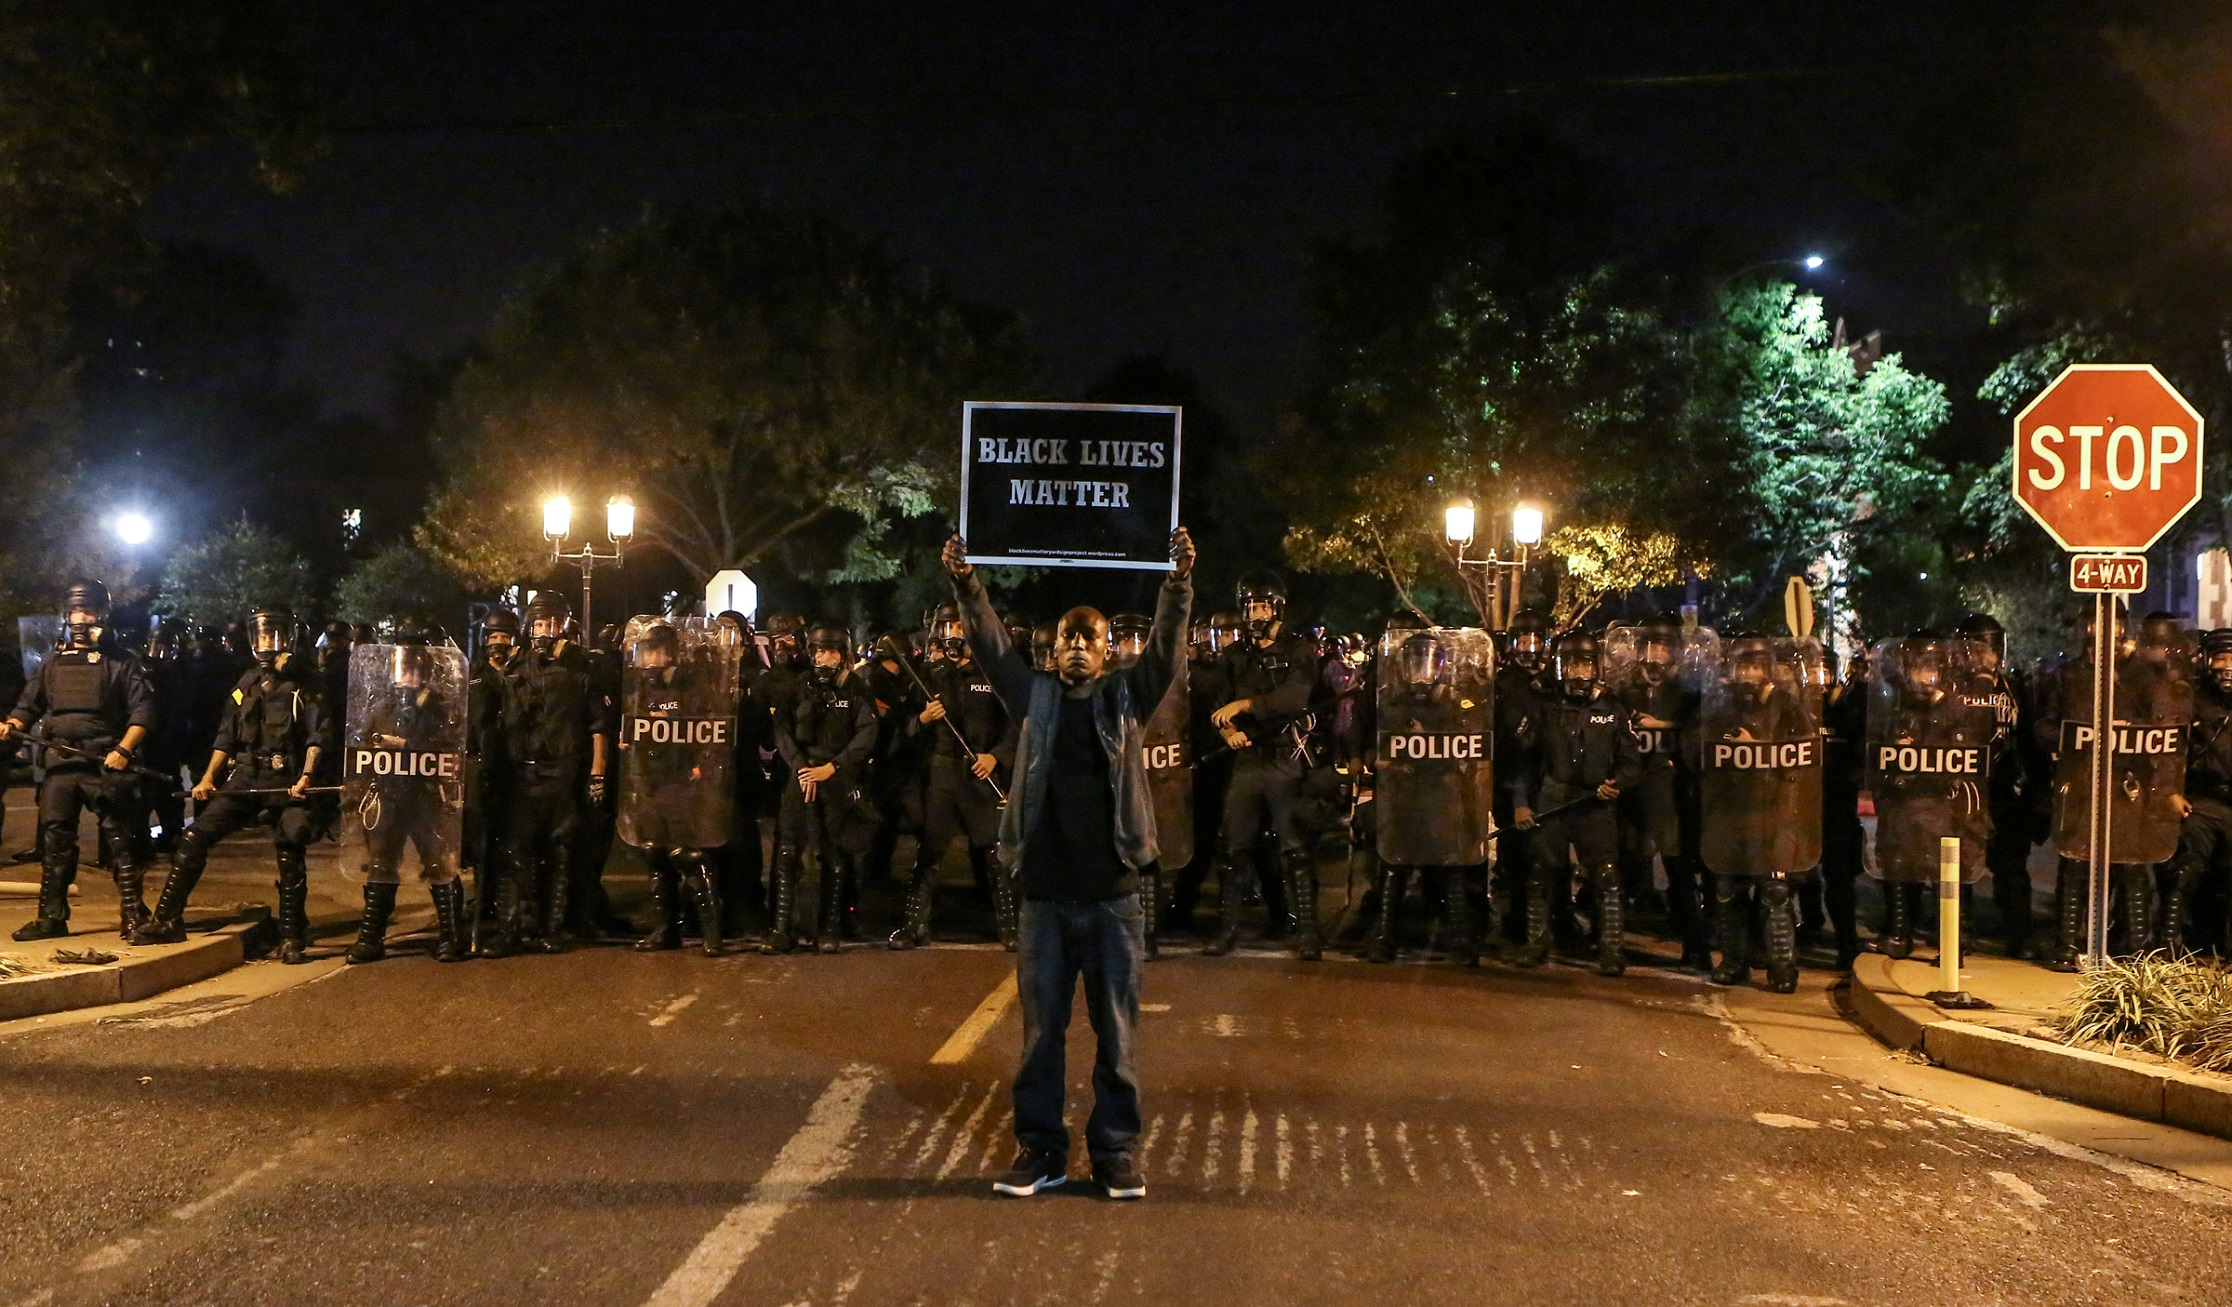 New data show that police violence predicts Black Lives Matter protests